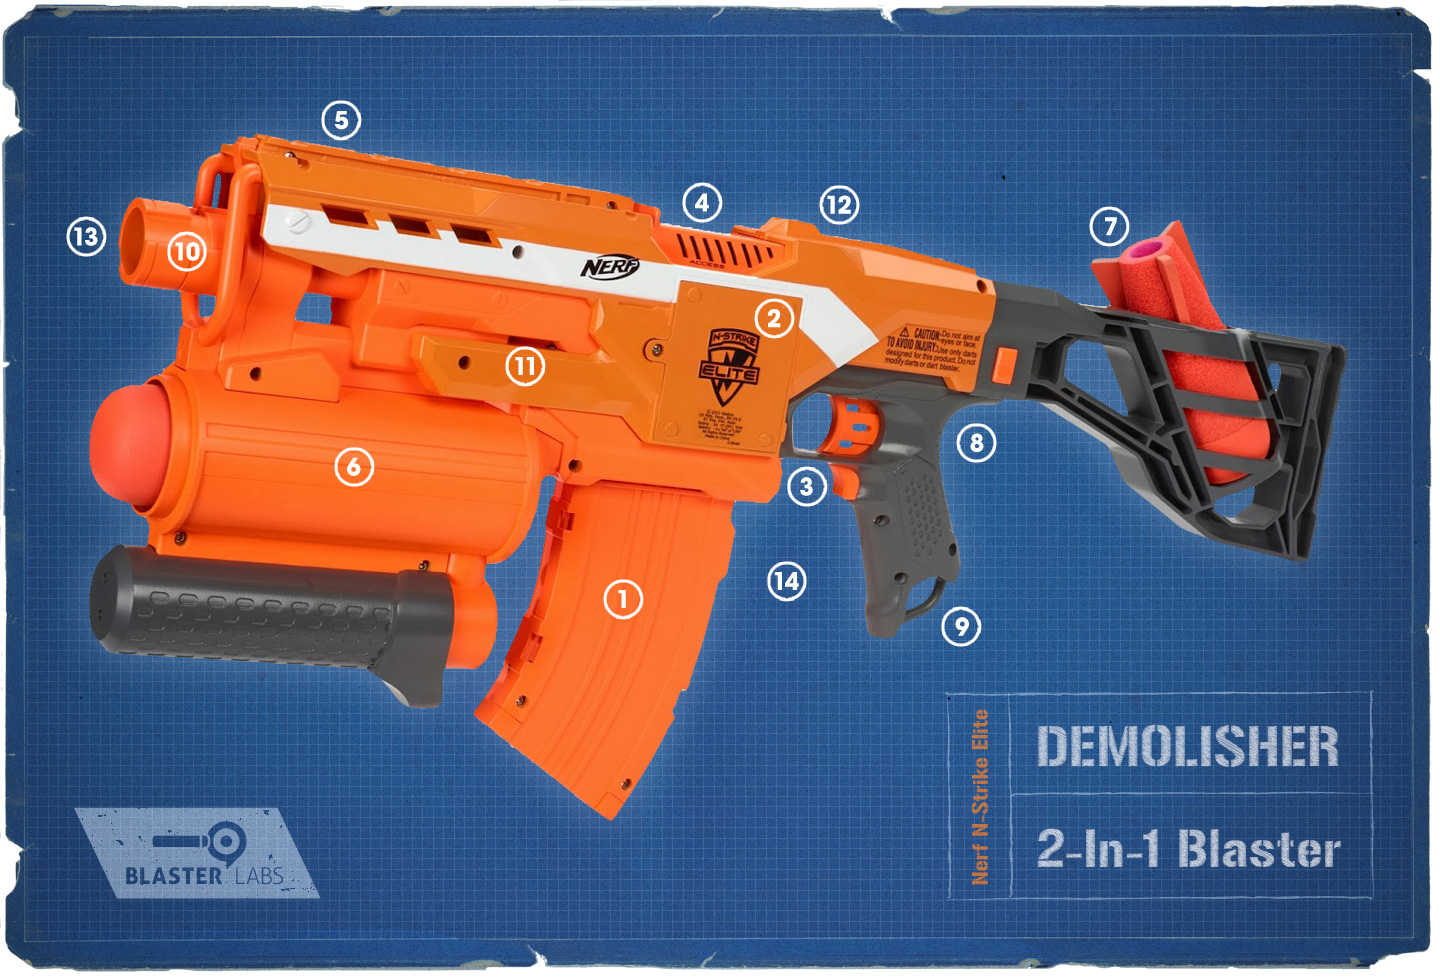 Demolisher Tech Details | Nerf N-Strike Elite